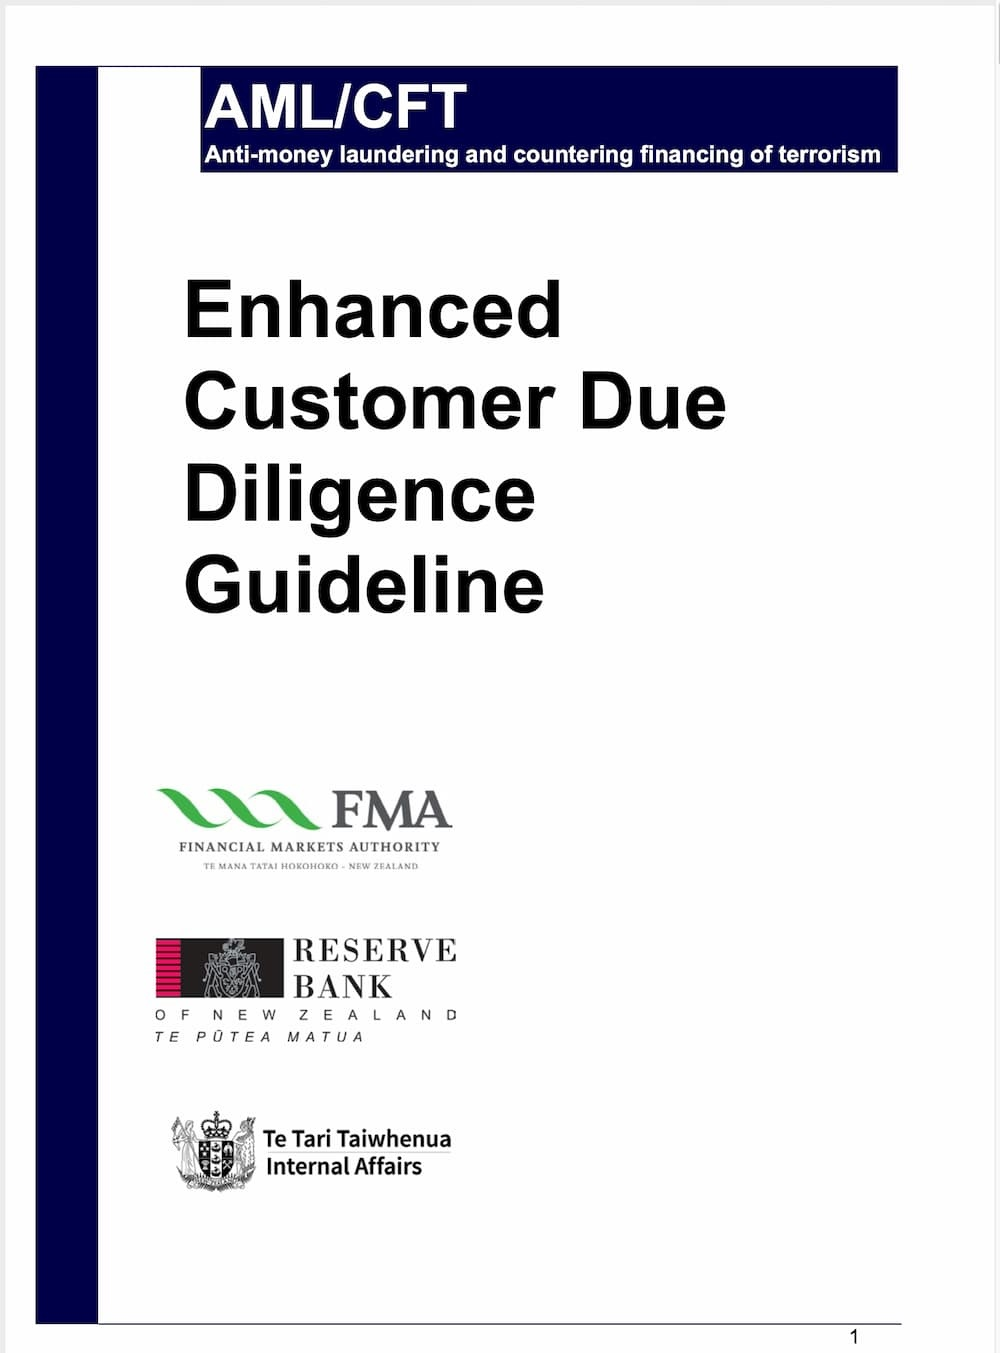 Enhanced Customer Due Diligence Guideline